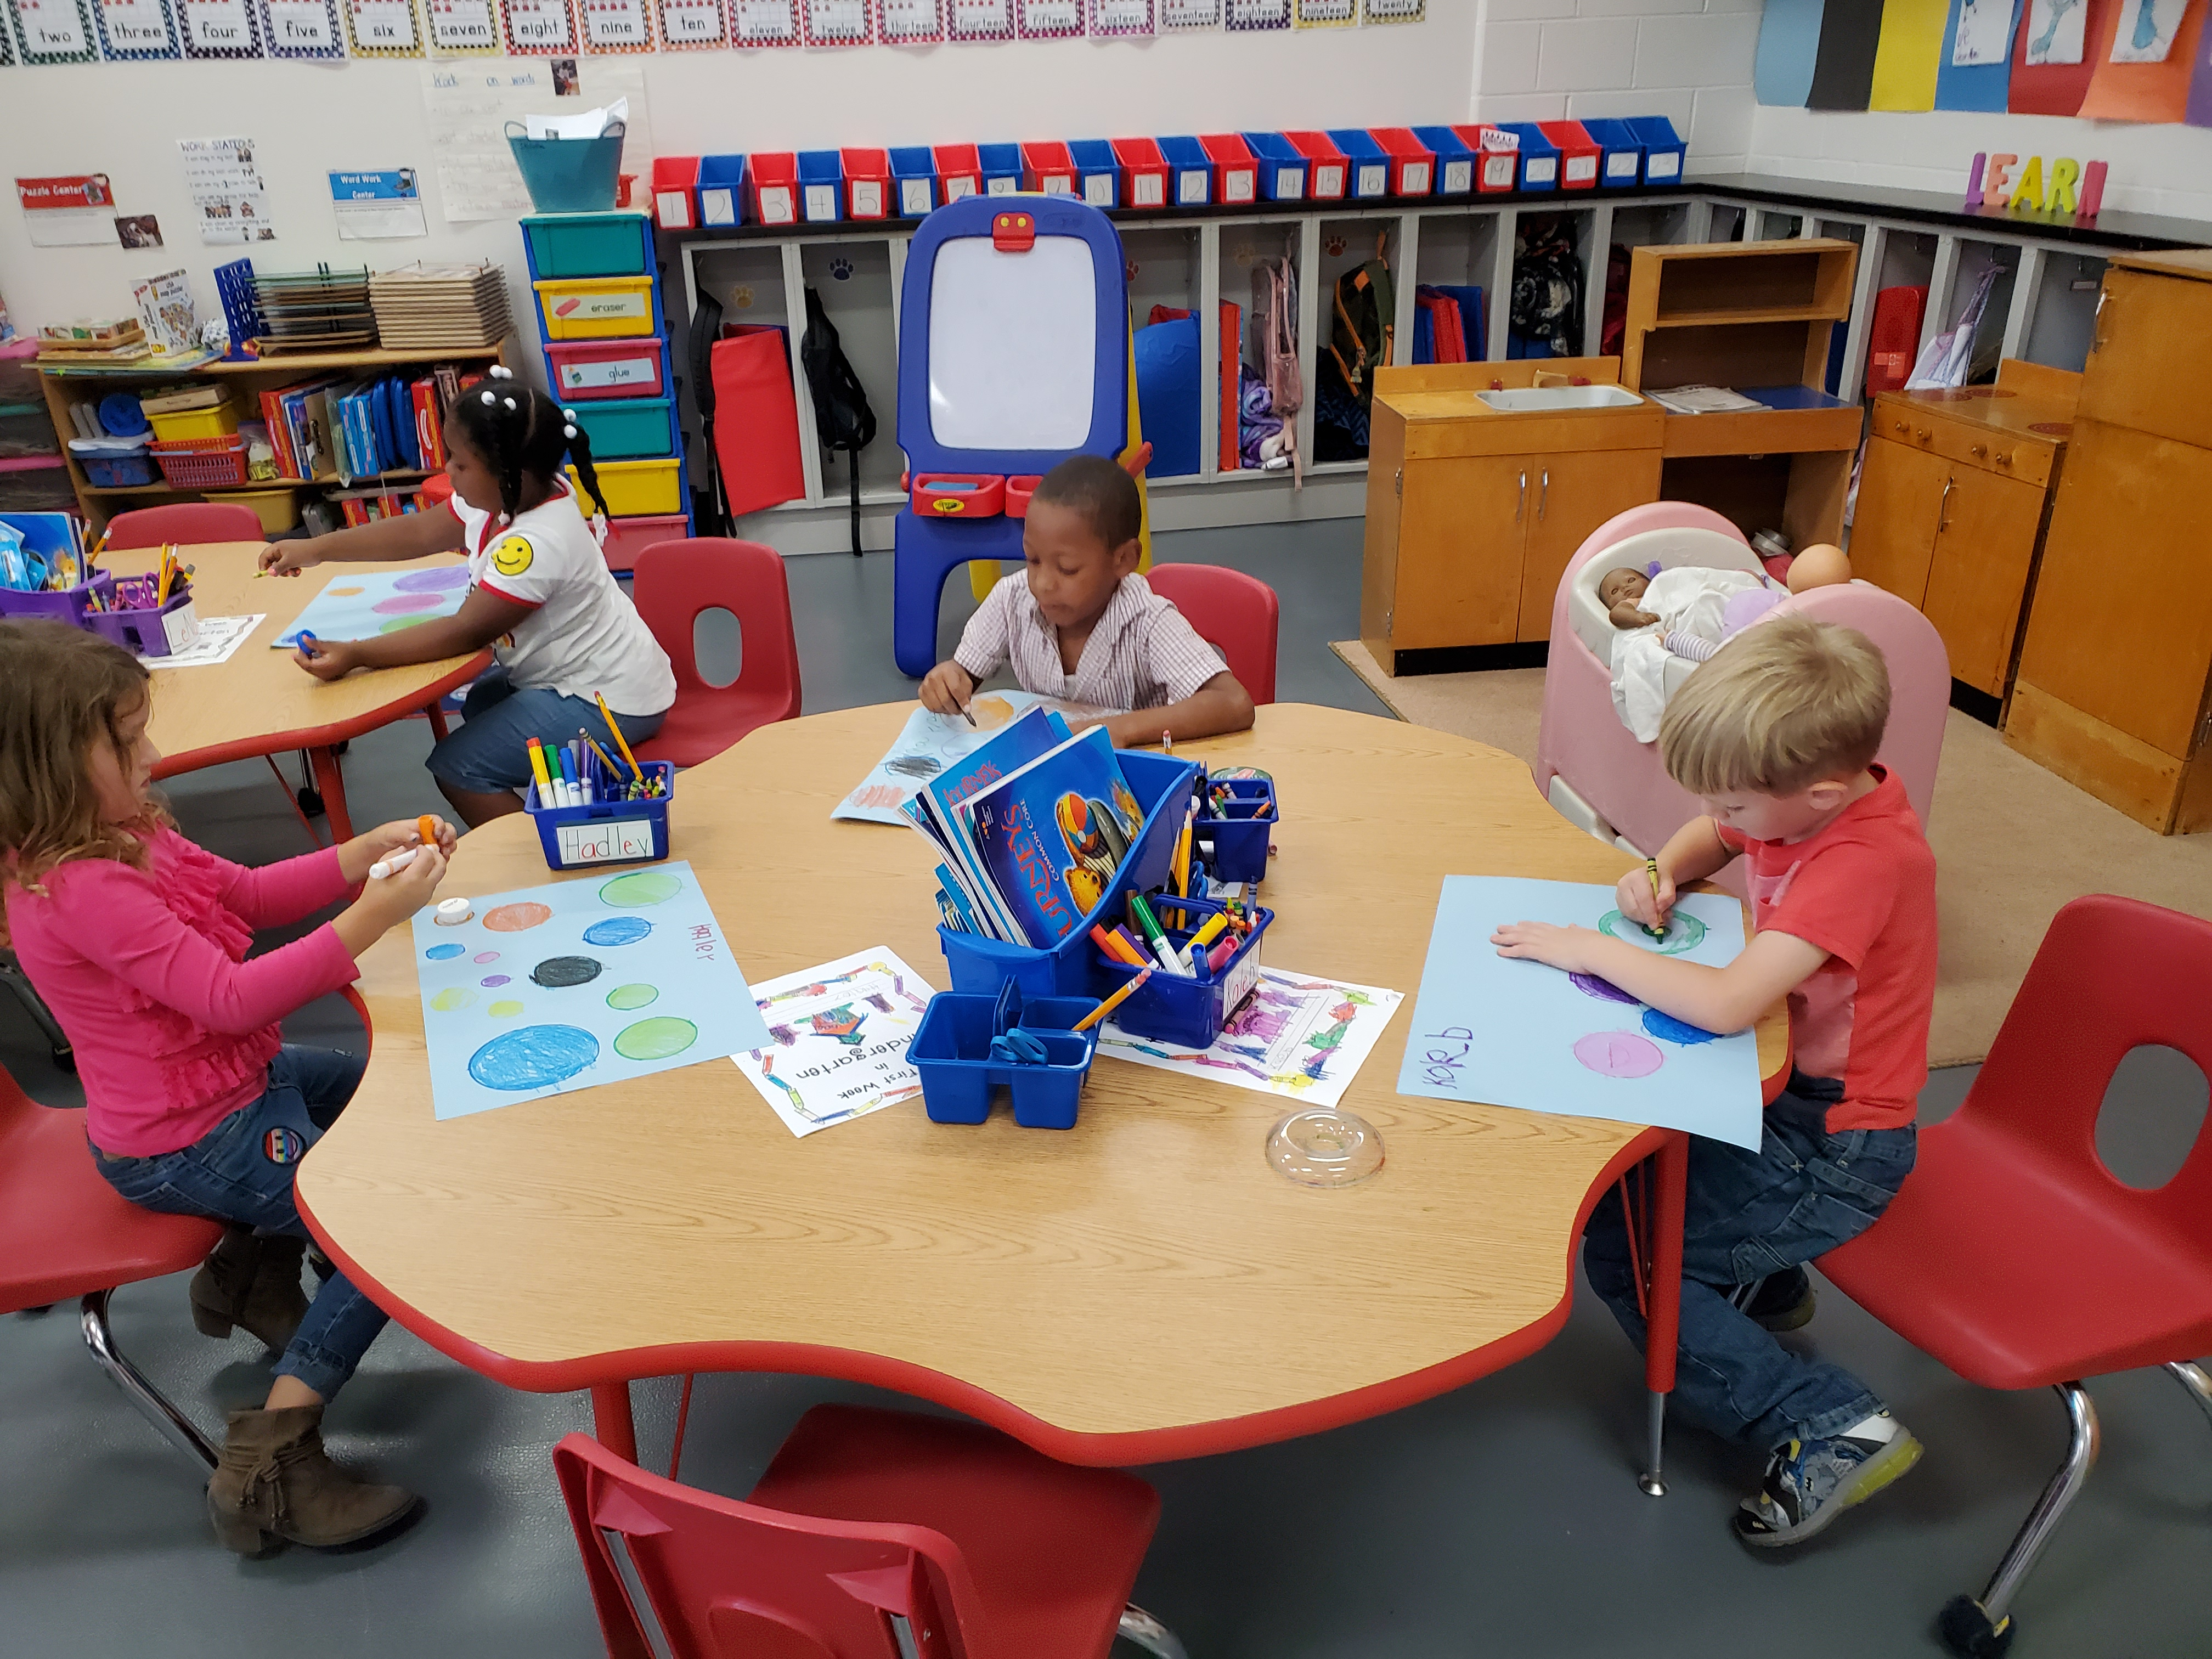 Three students sat around the table, drawing circles of very different colors.